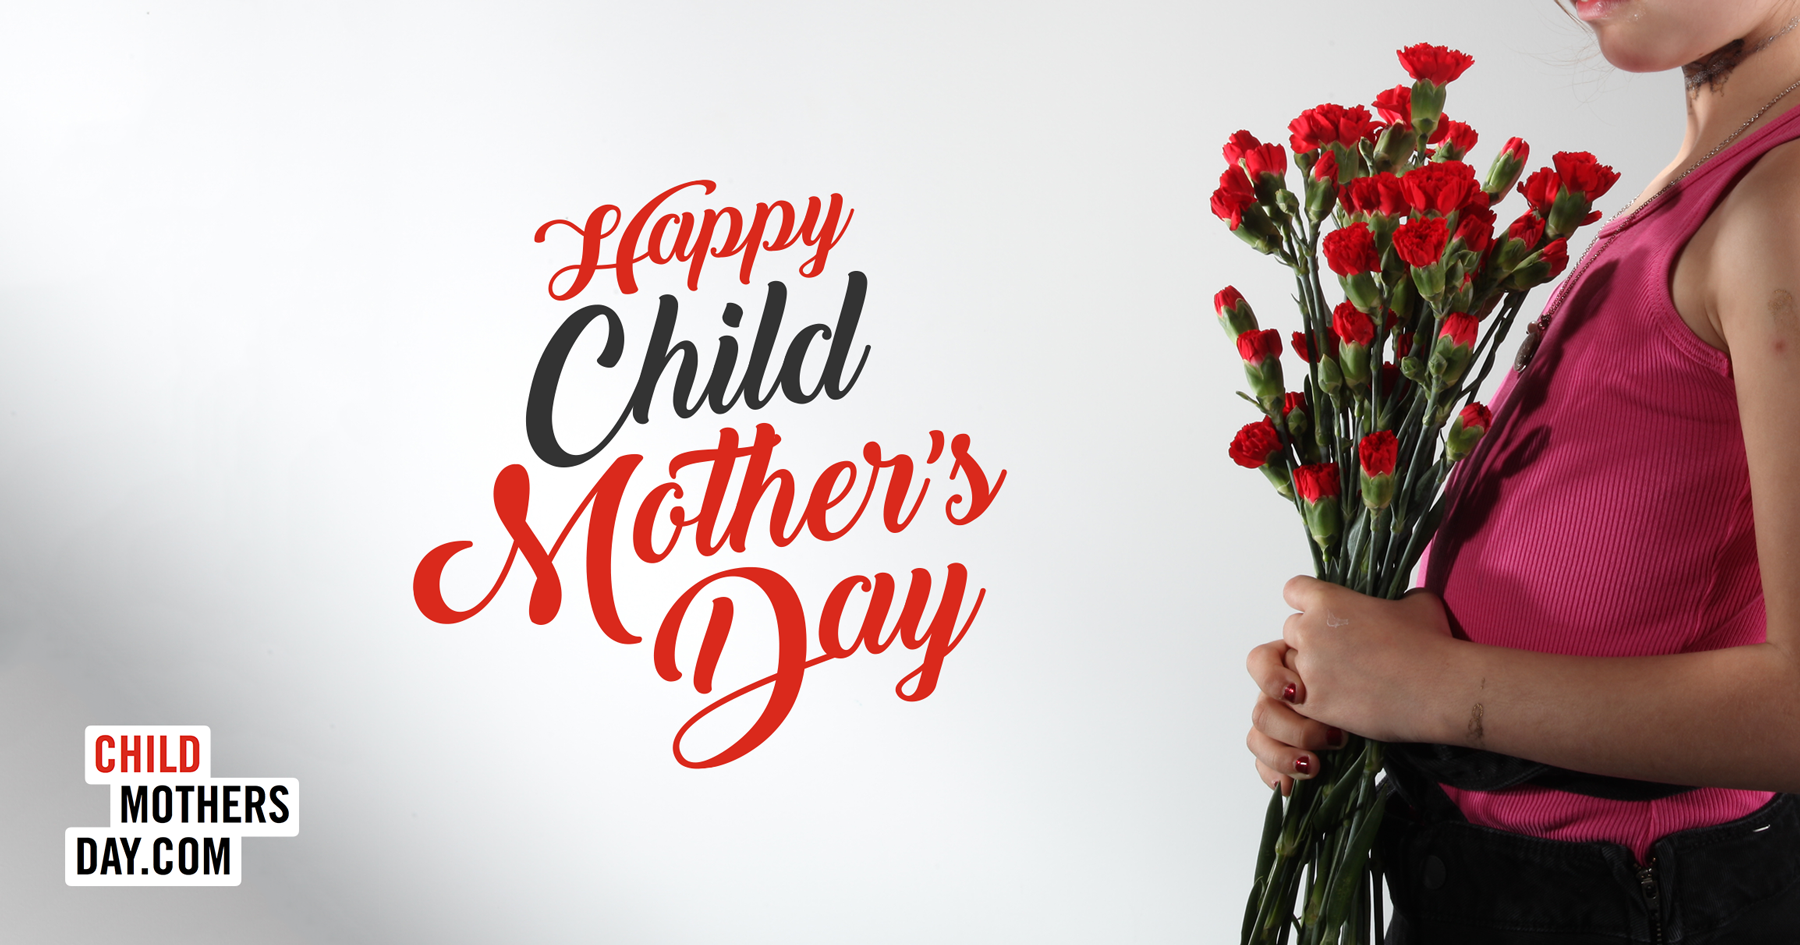 Save the Children Print Ad - Happy Child Mother's Day